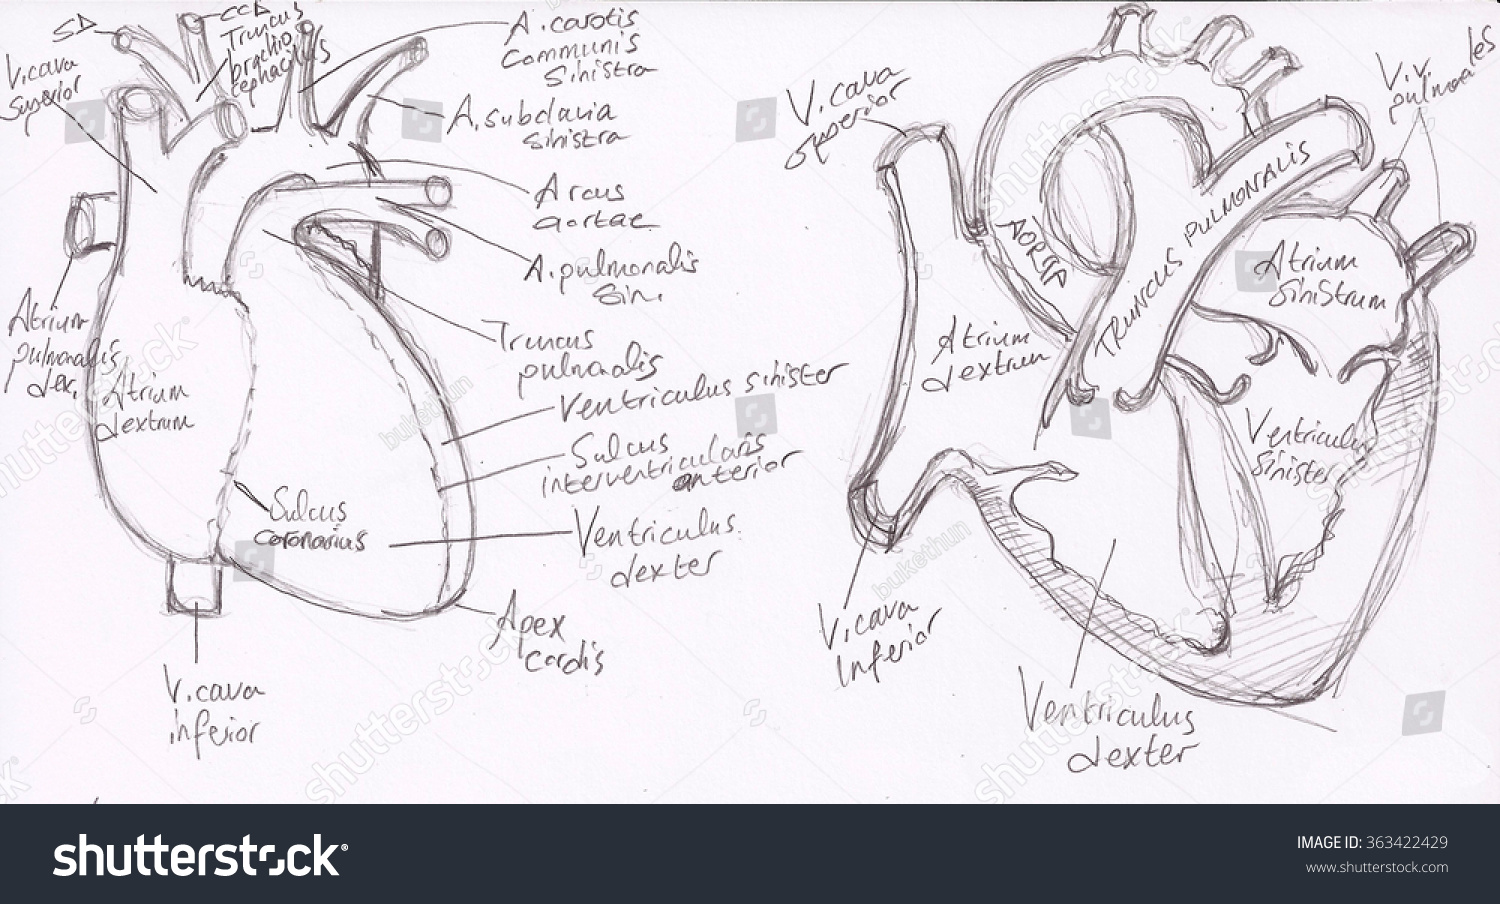 Royalty Free Stock Illustration Of Anatomy Drawings Heart Medical